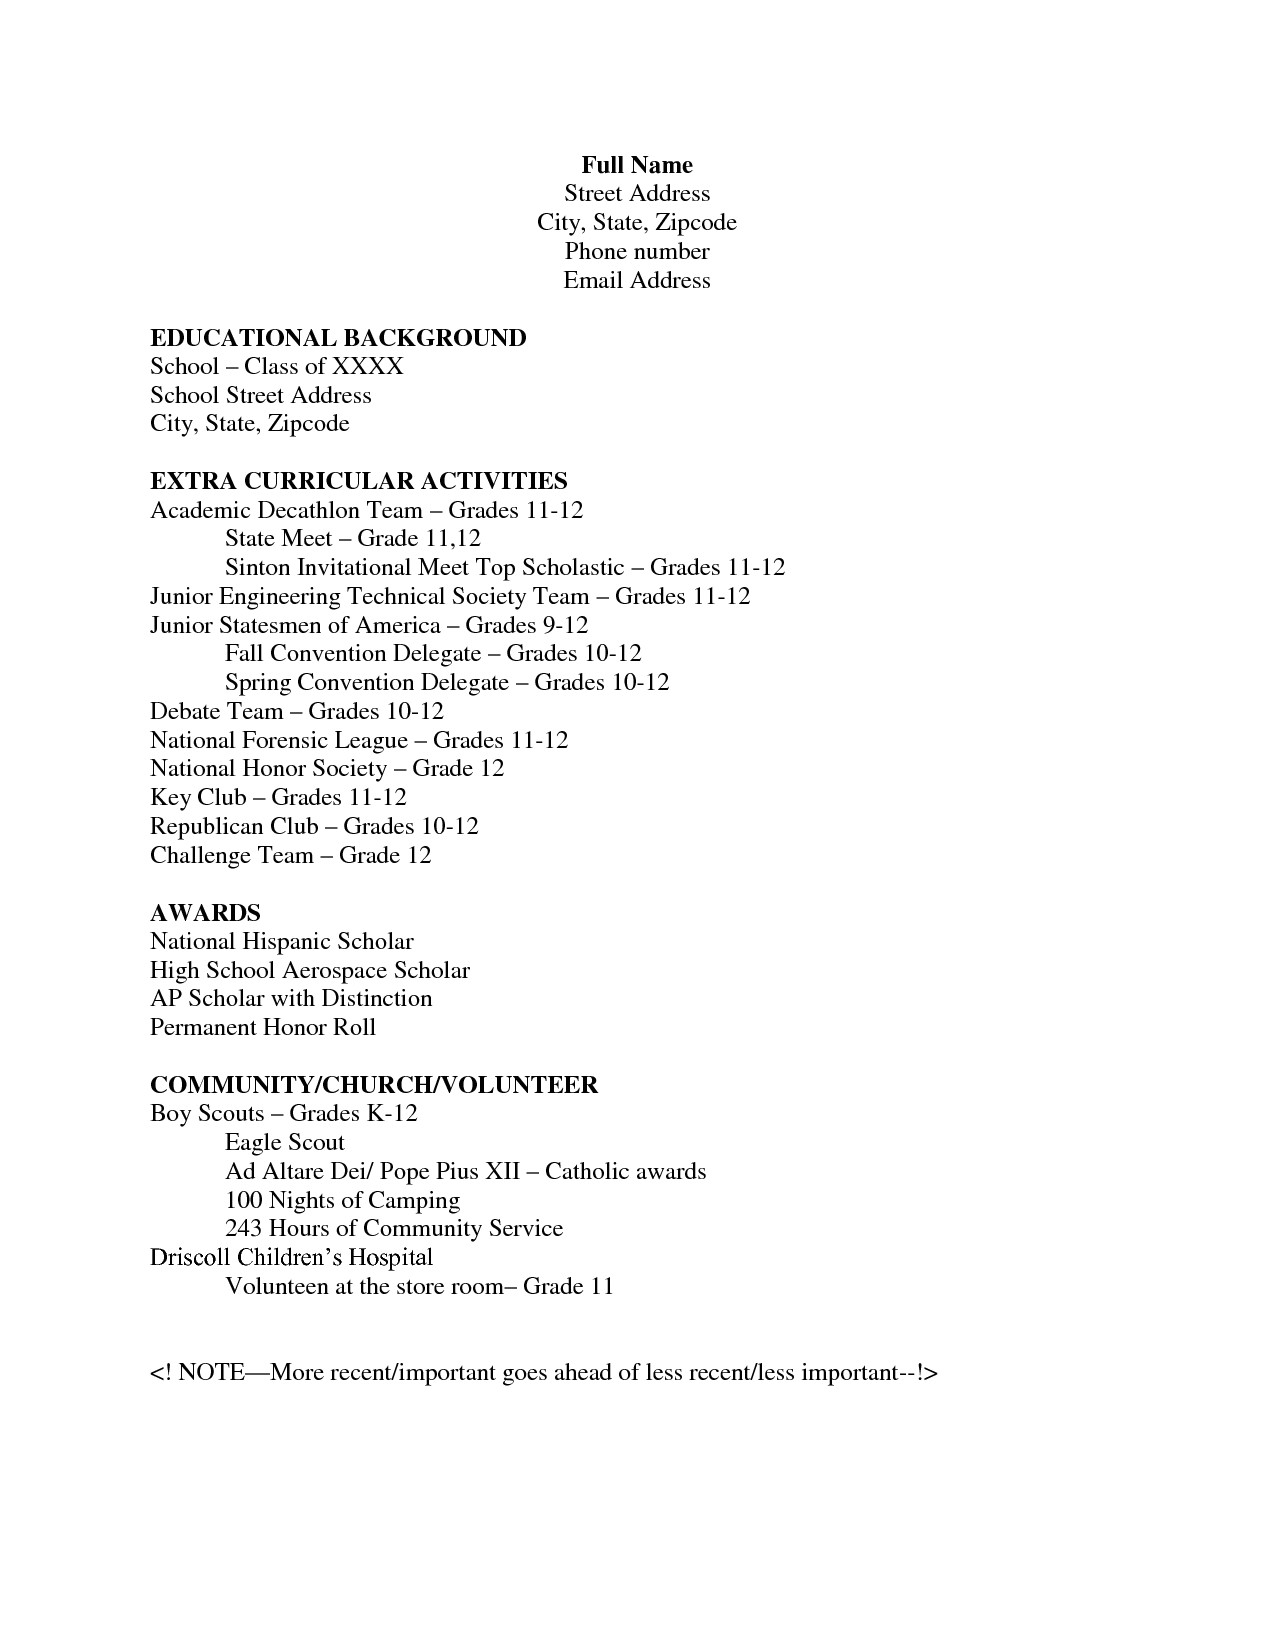 Template for High School Resume College Graduate Resume No Work Experience